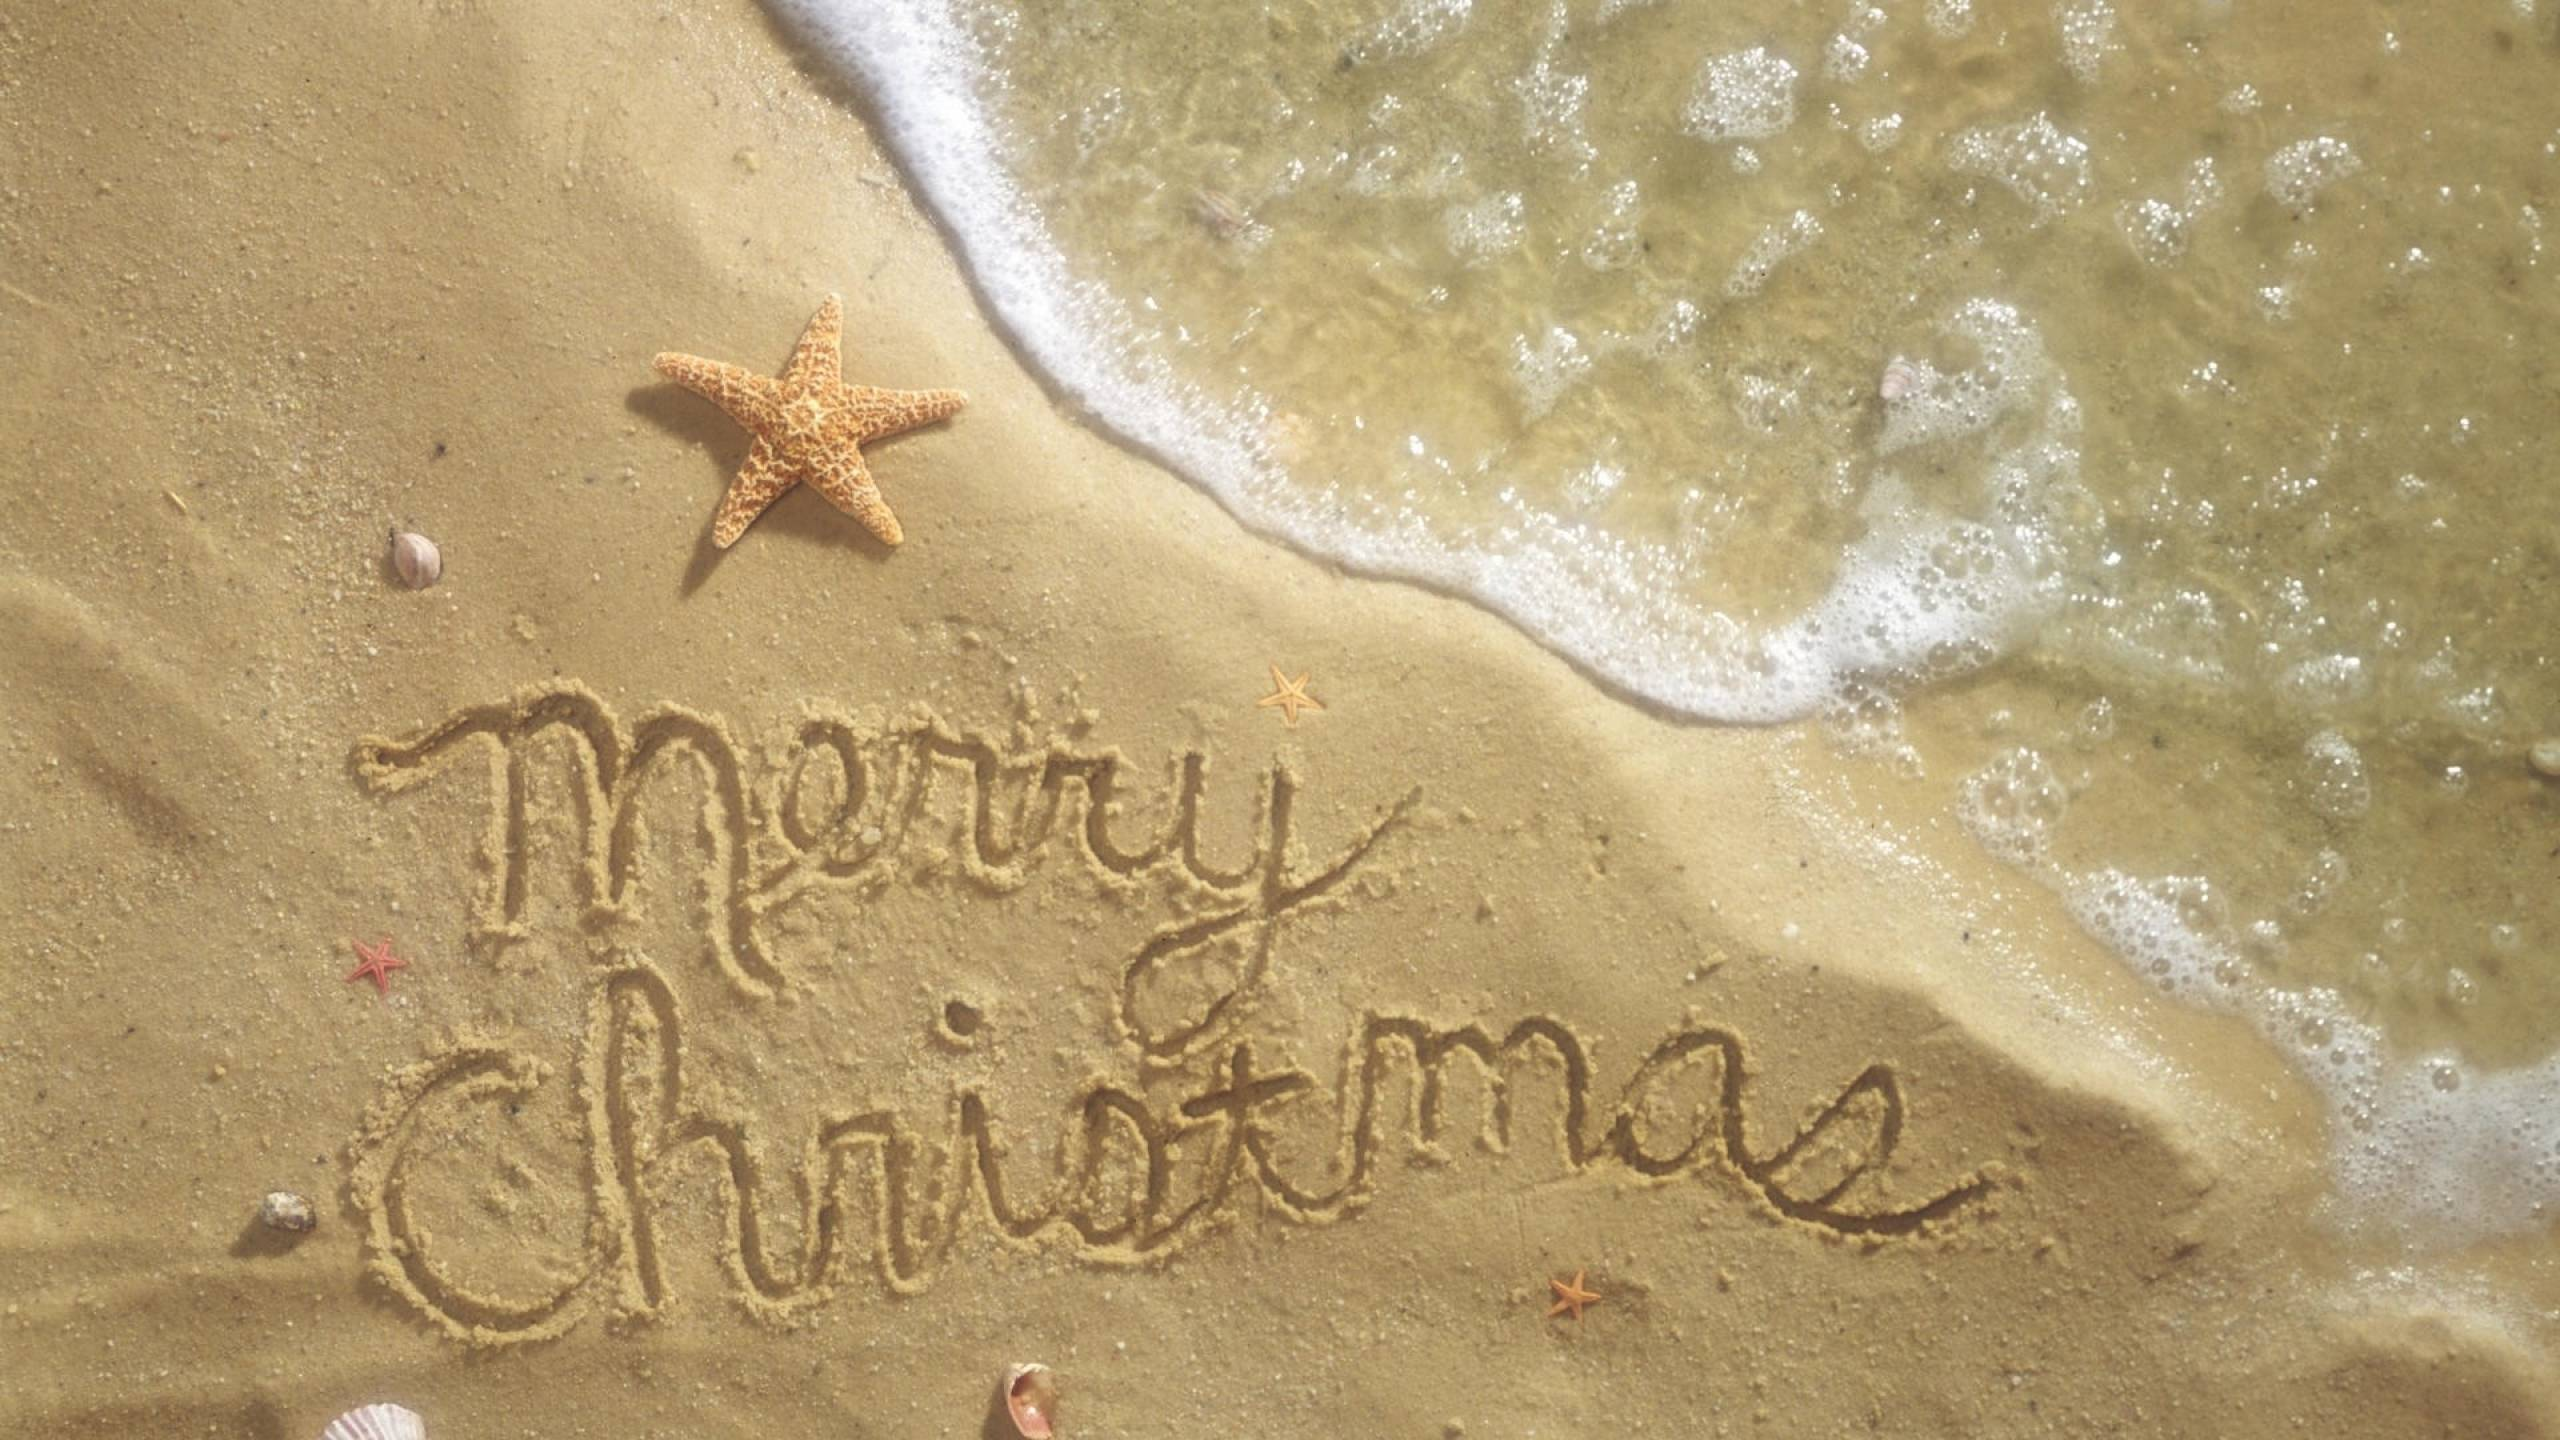 xmas stuff for tropical christmas wallpaper - Beach Christmas Pictures